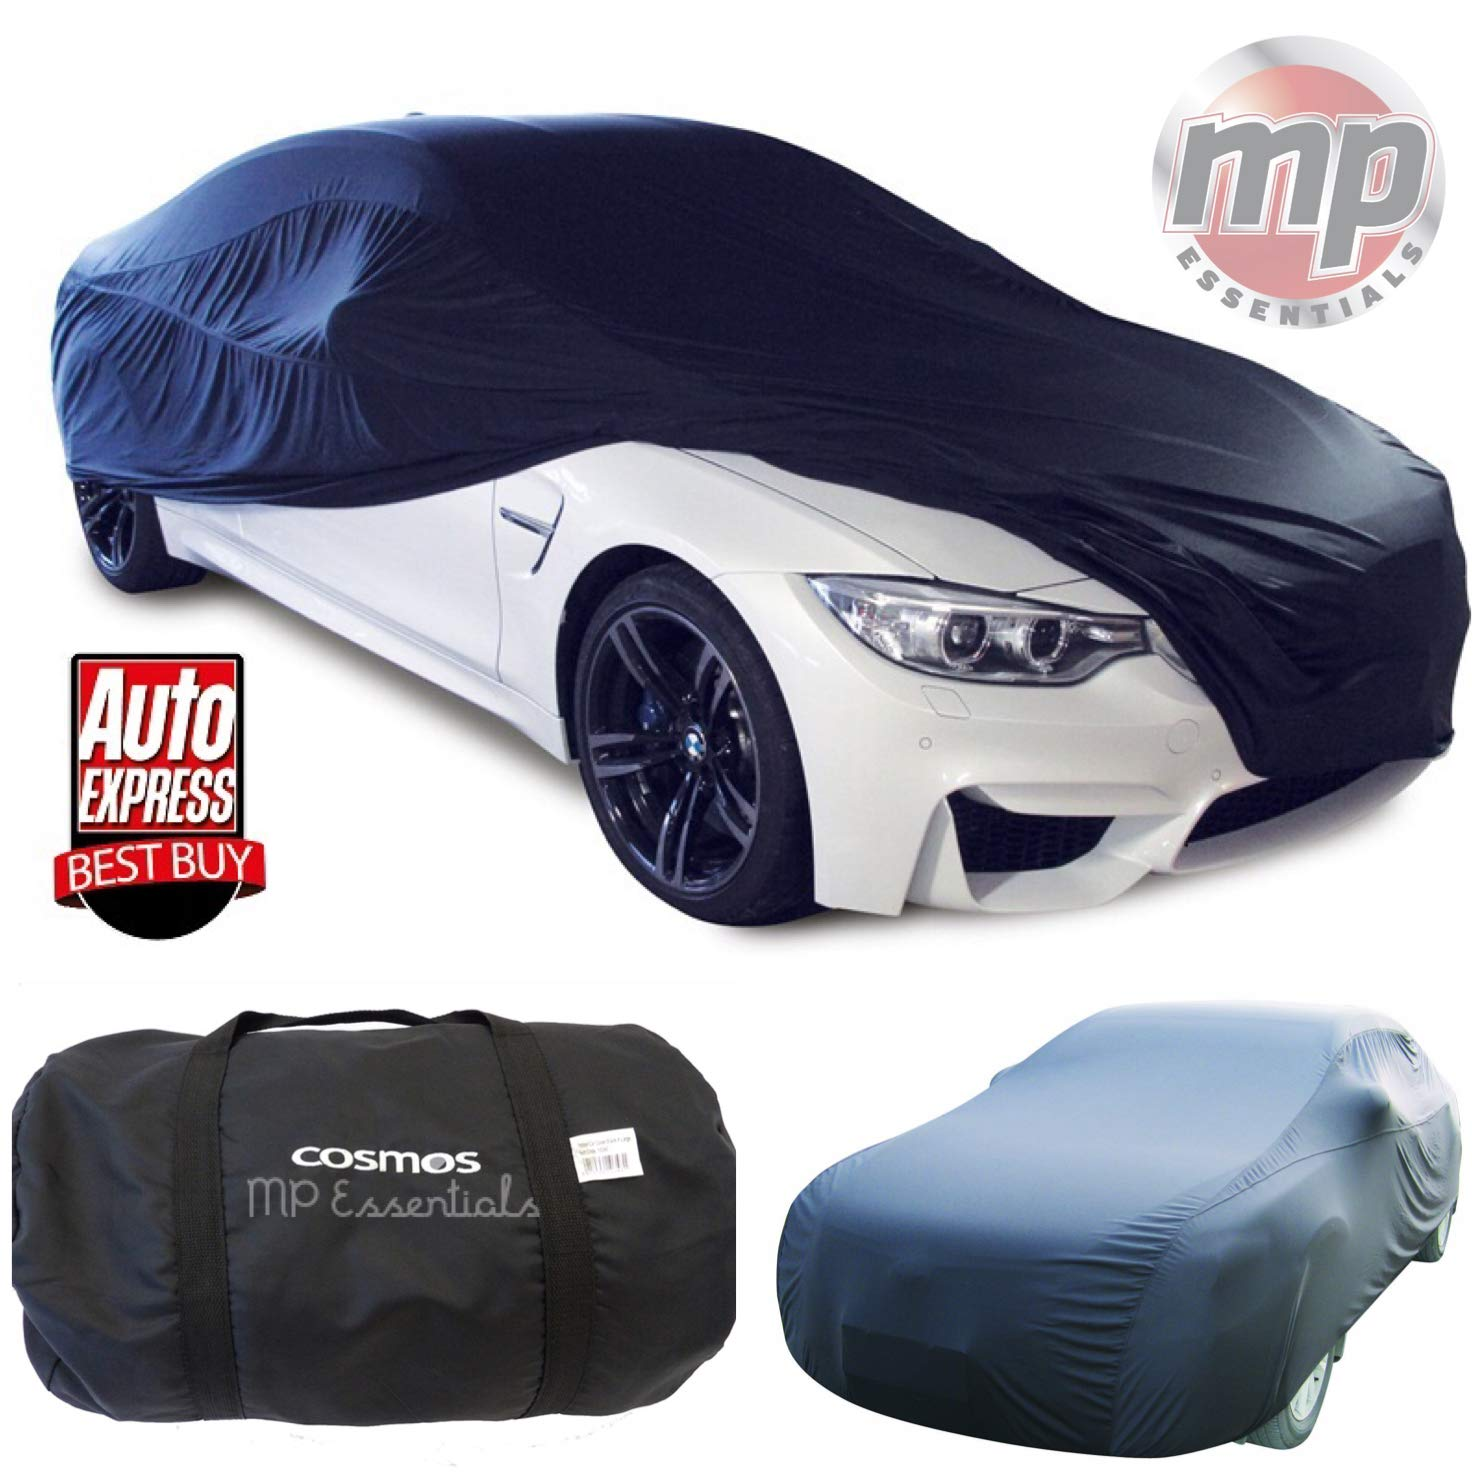 BLACK 516 x 139 x 120cm Extra Large MP Essentials Breathable Fabric Indoor Garage /& Showroom Full Car Cover